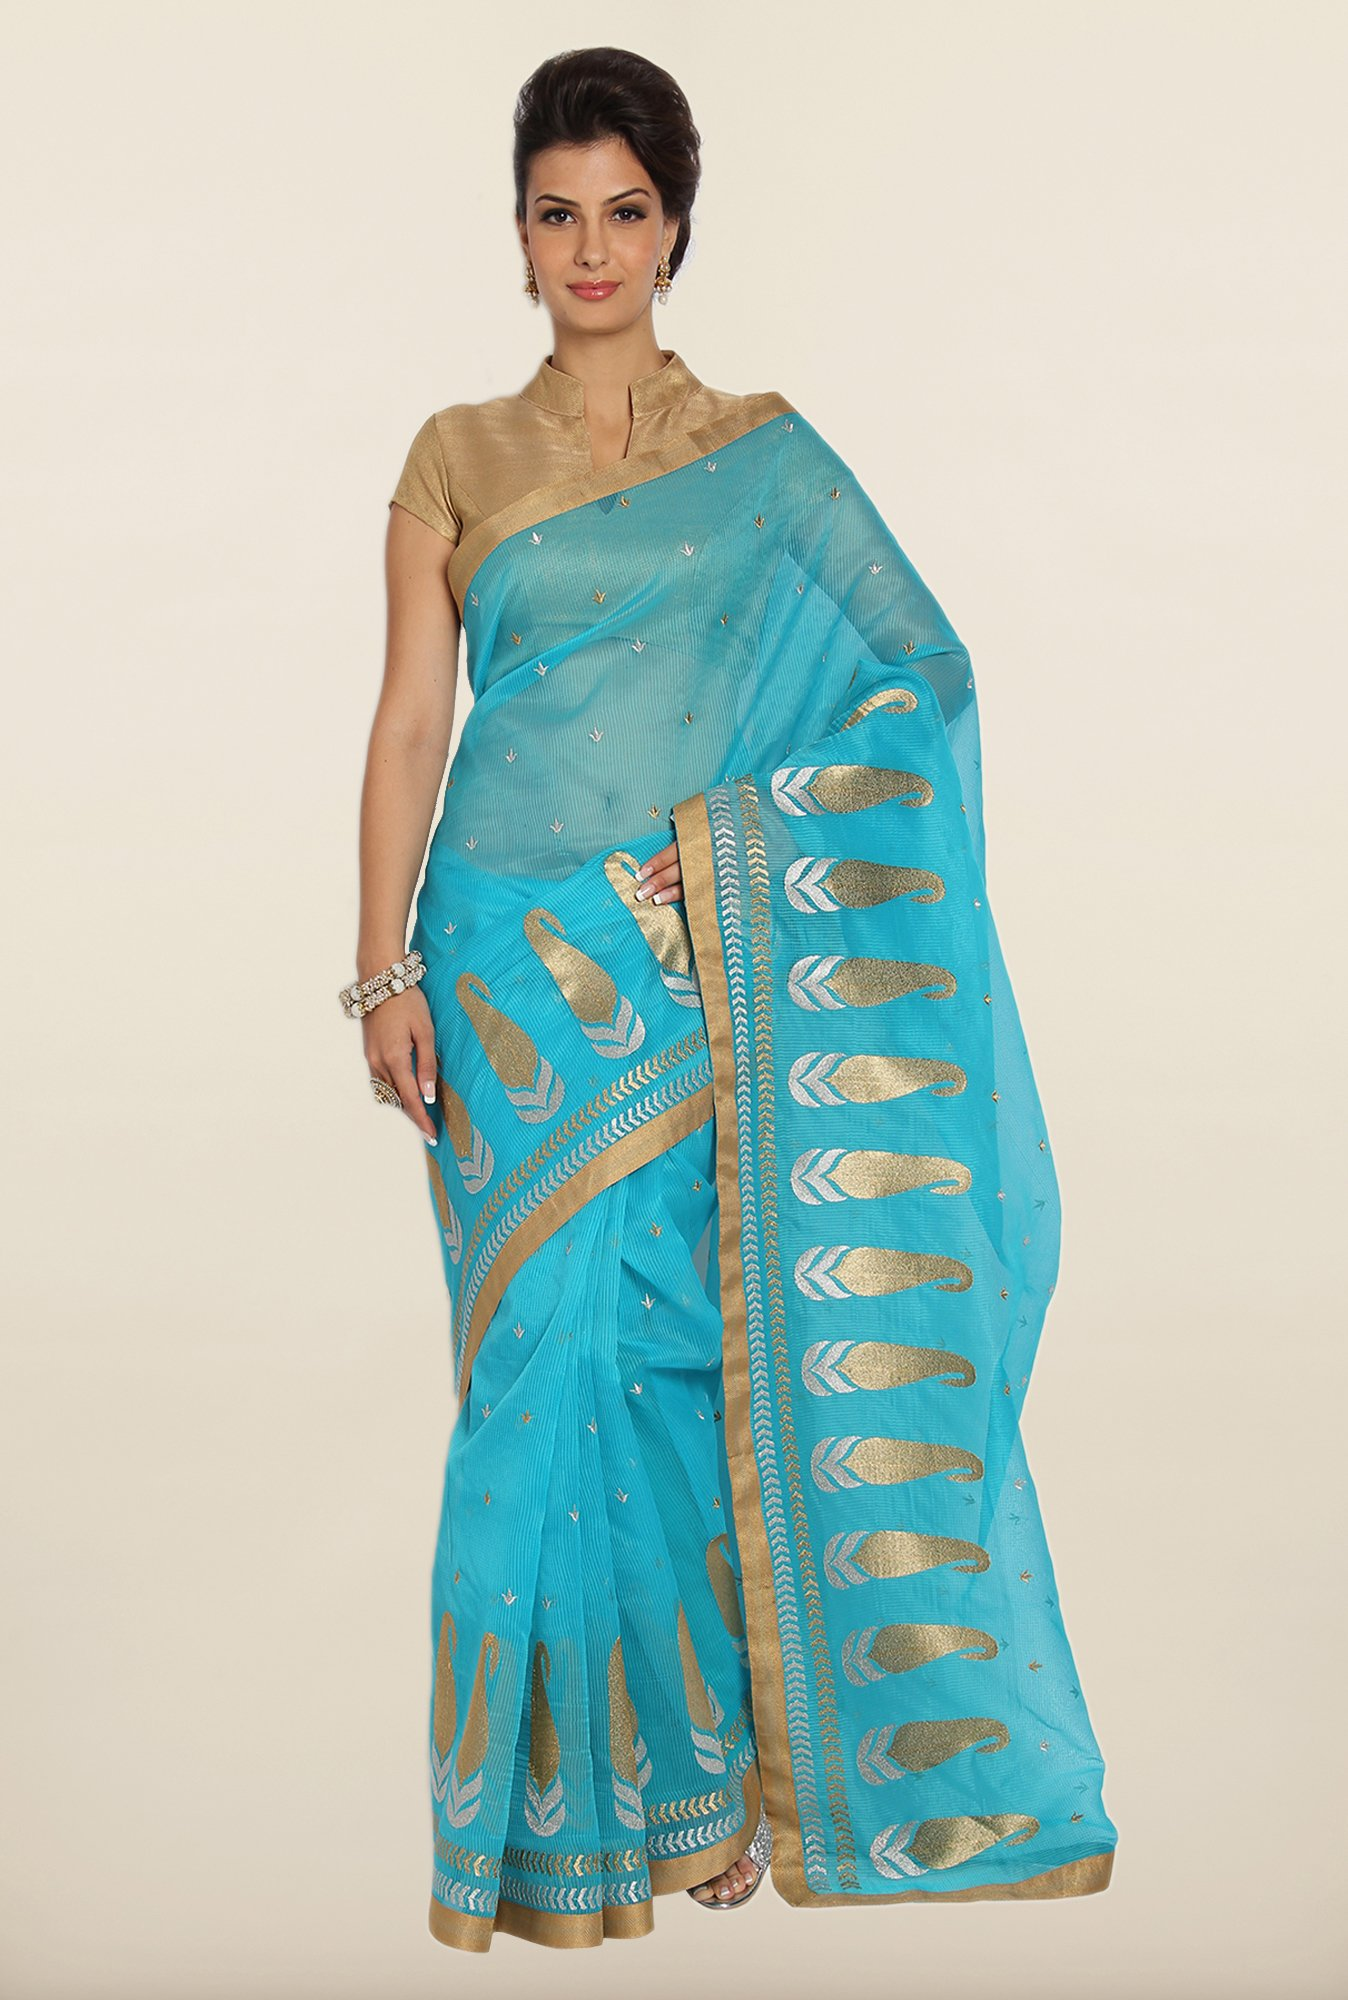 Soch Blue Kota Cotton Saree